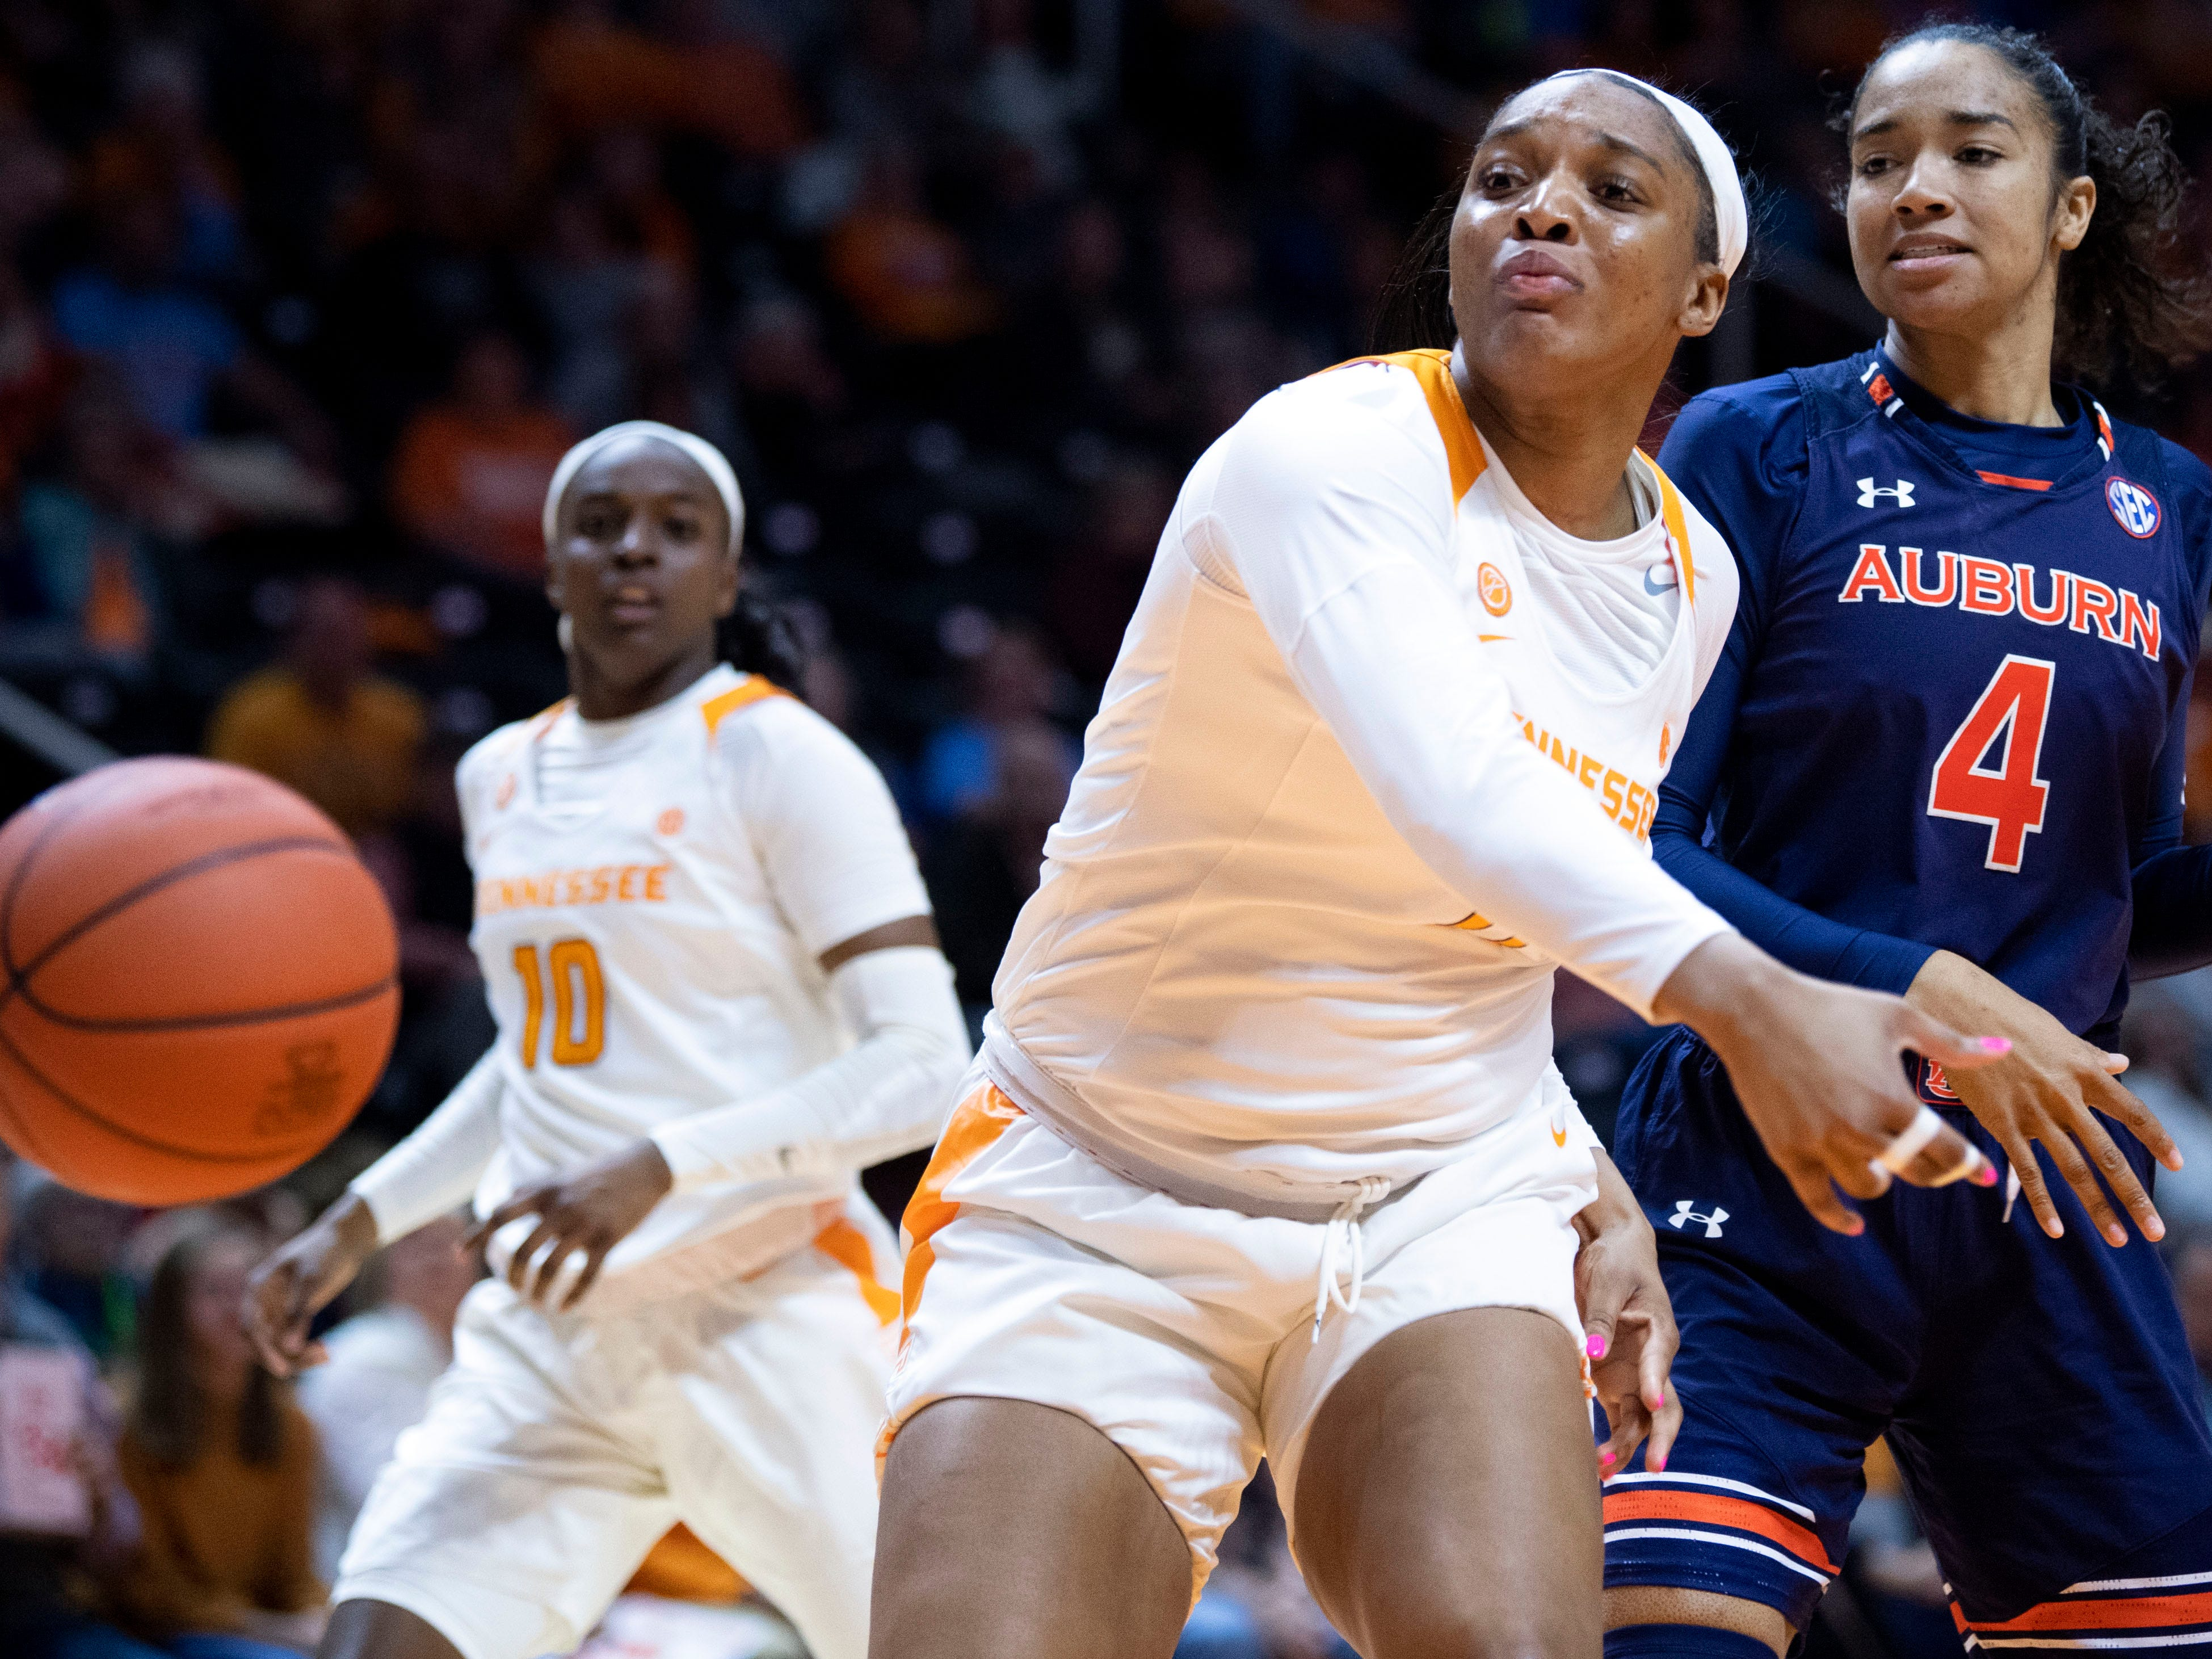 The ball flies out of bounds before Tennessee's Kasiyahna Kushkituah (11) and Auburn's Abigayle Jackson (4) on Thursday, February 14, 2019.